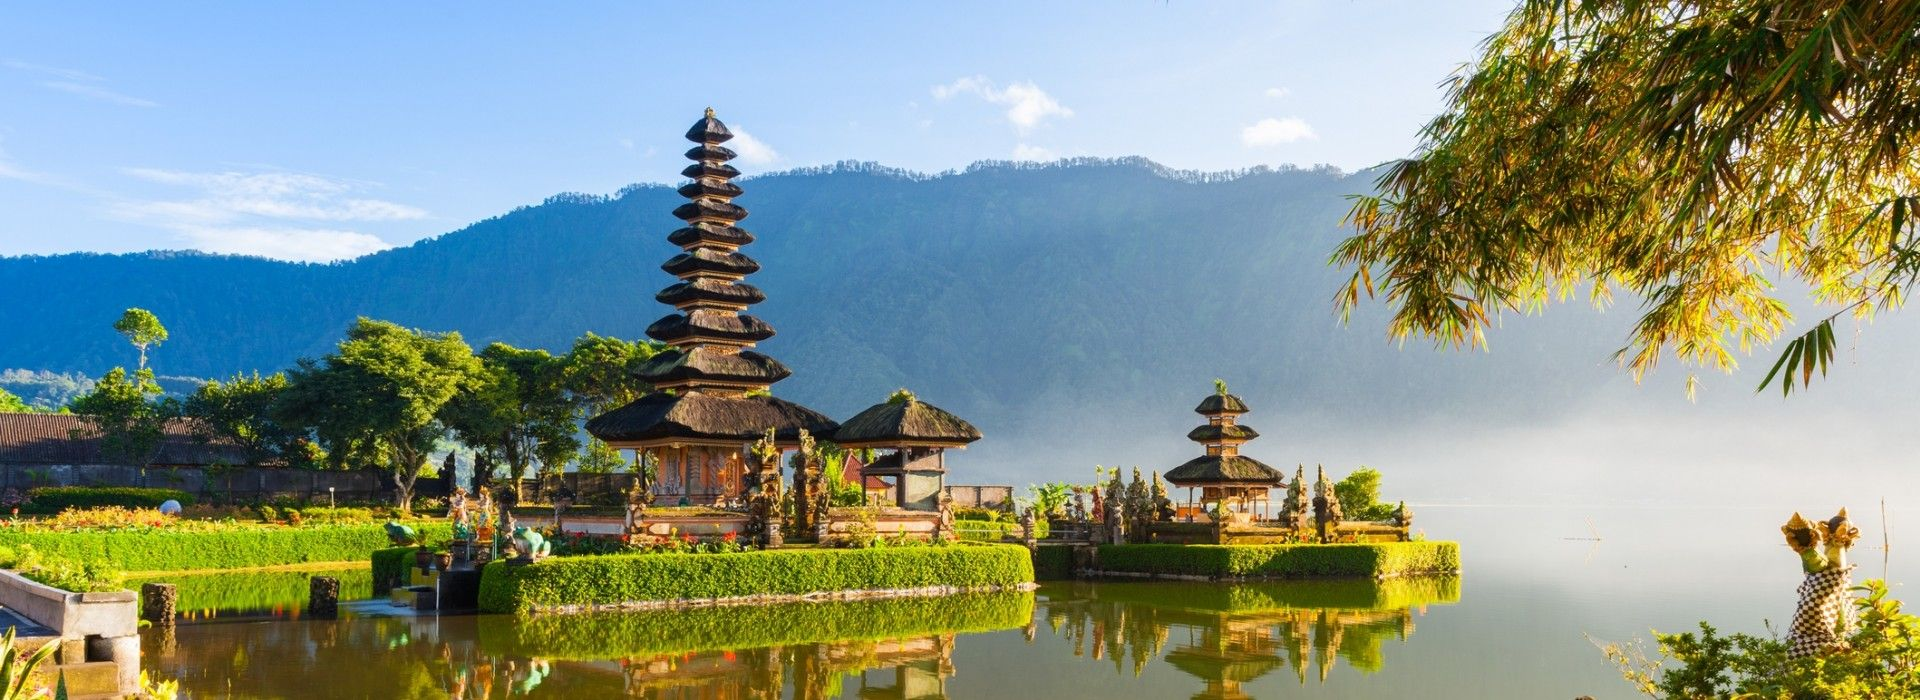 Beach, romance, getaways and relaxation Tours in Jakarta